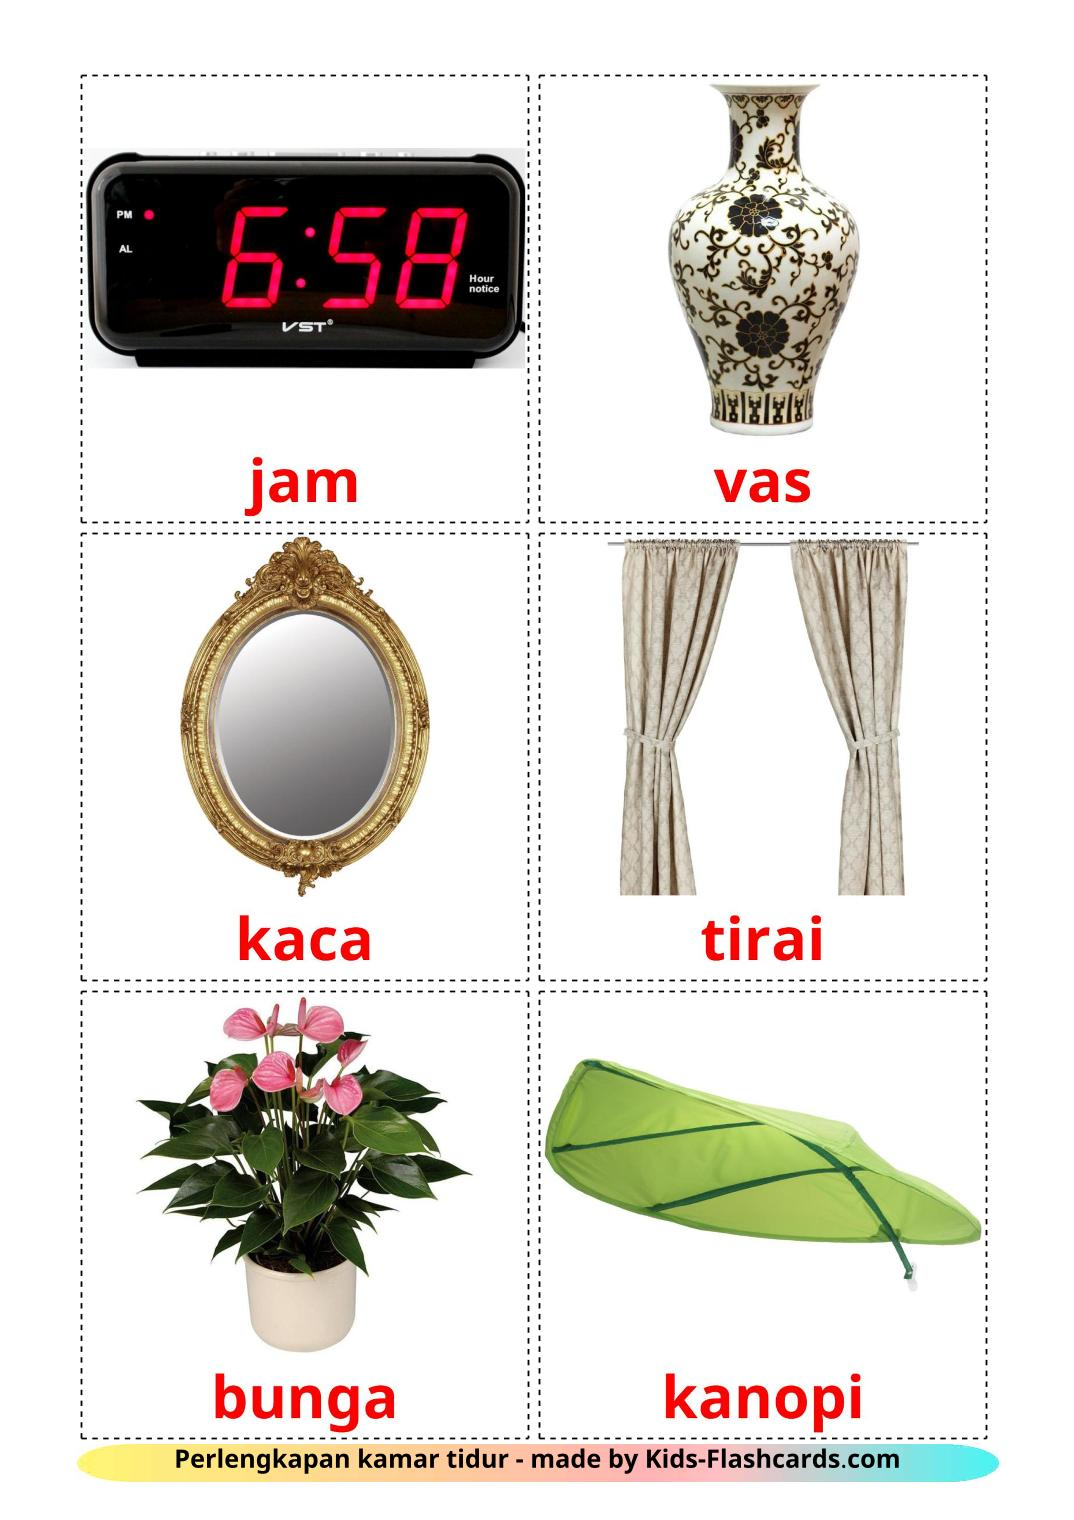 Bedroom accessories - 18 Free Printable indonesian Flashcards